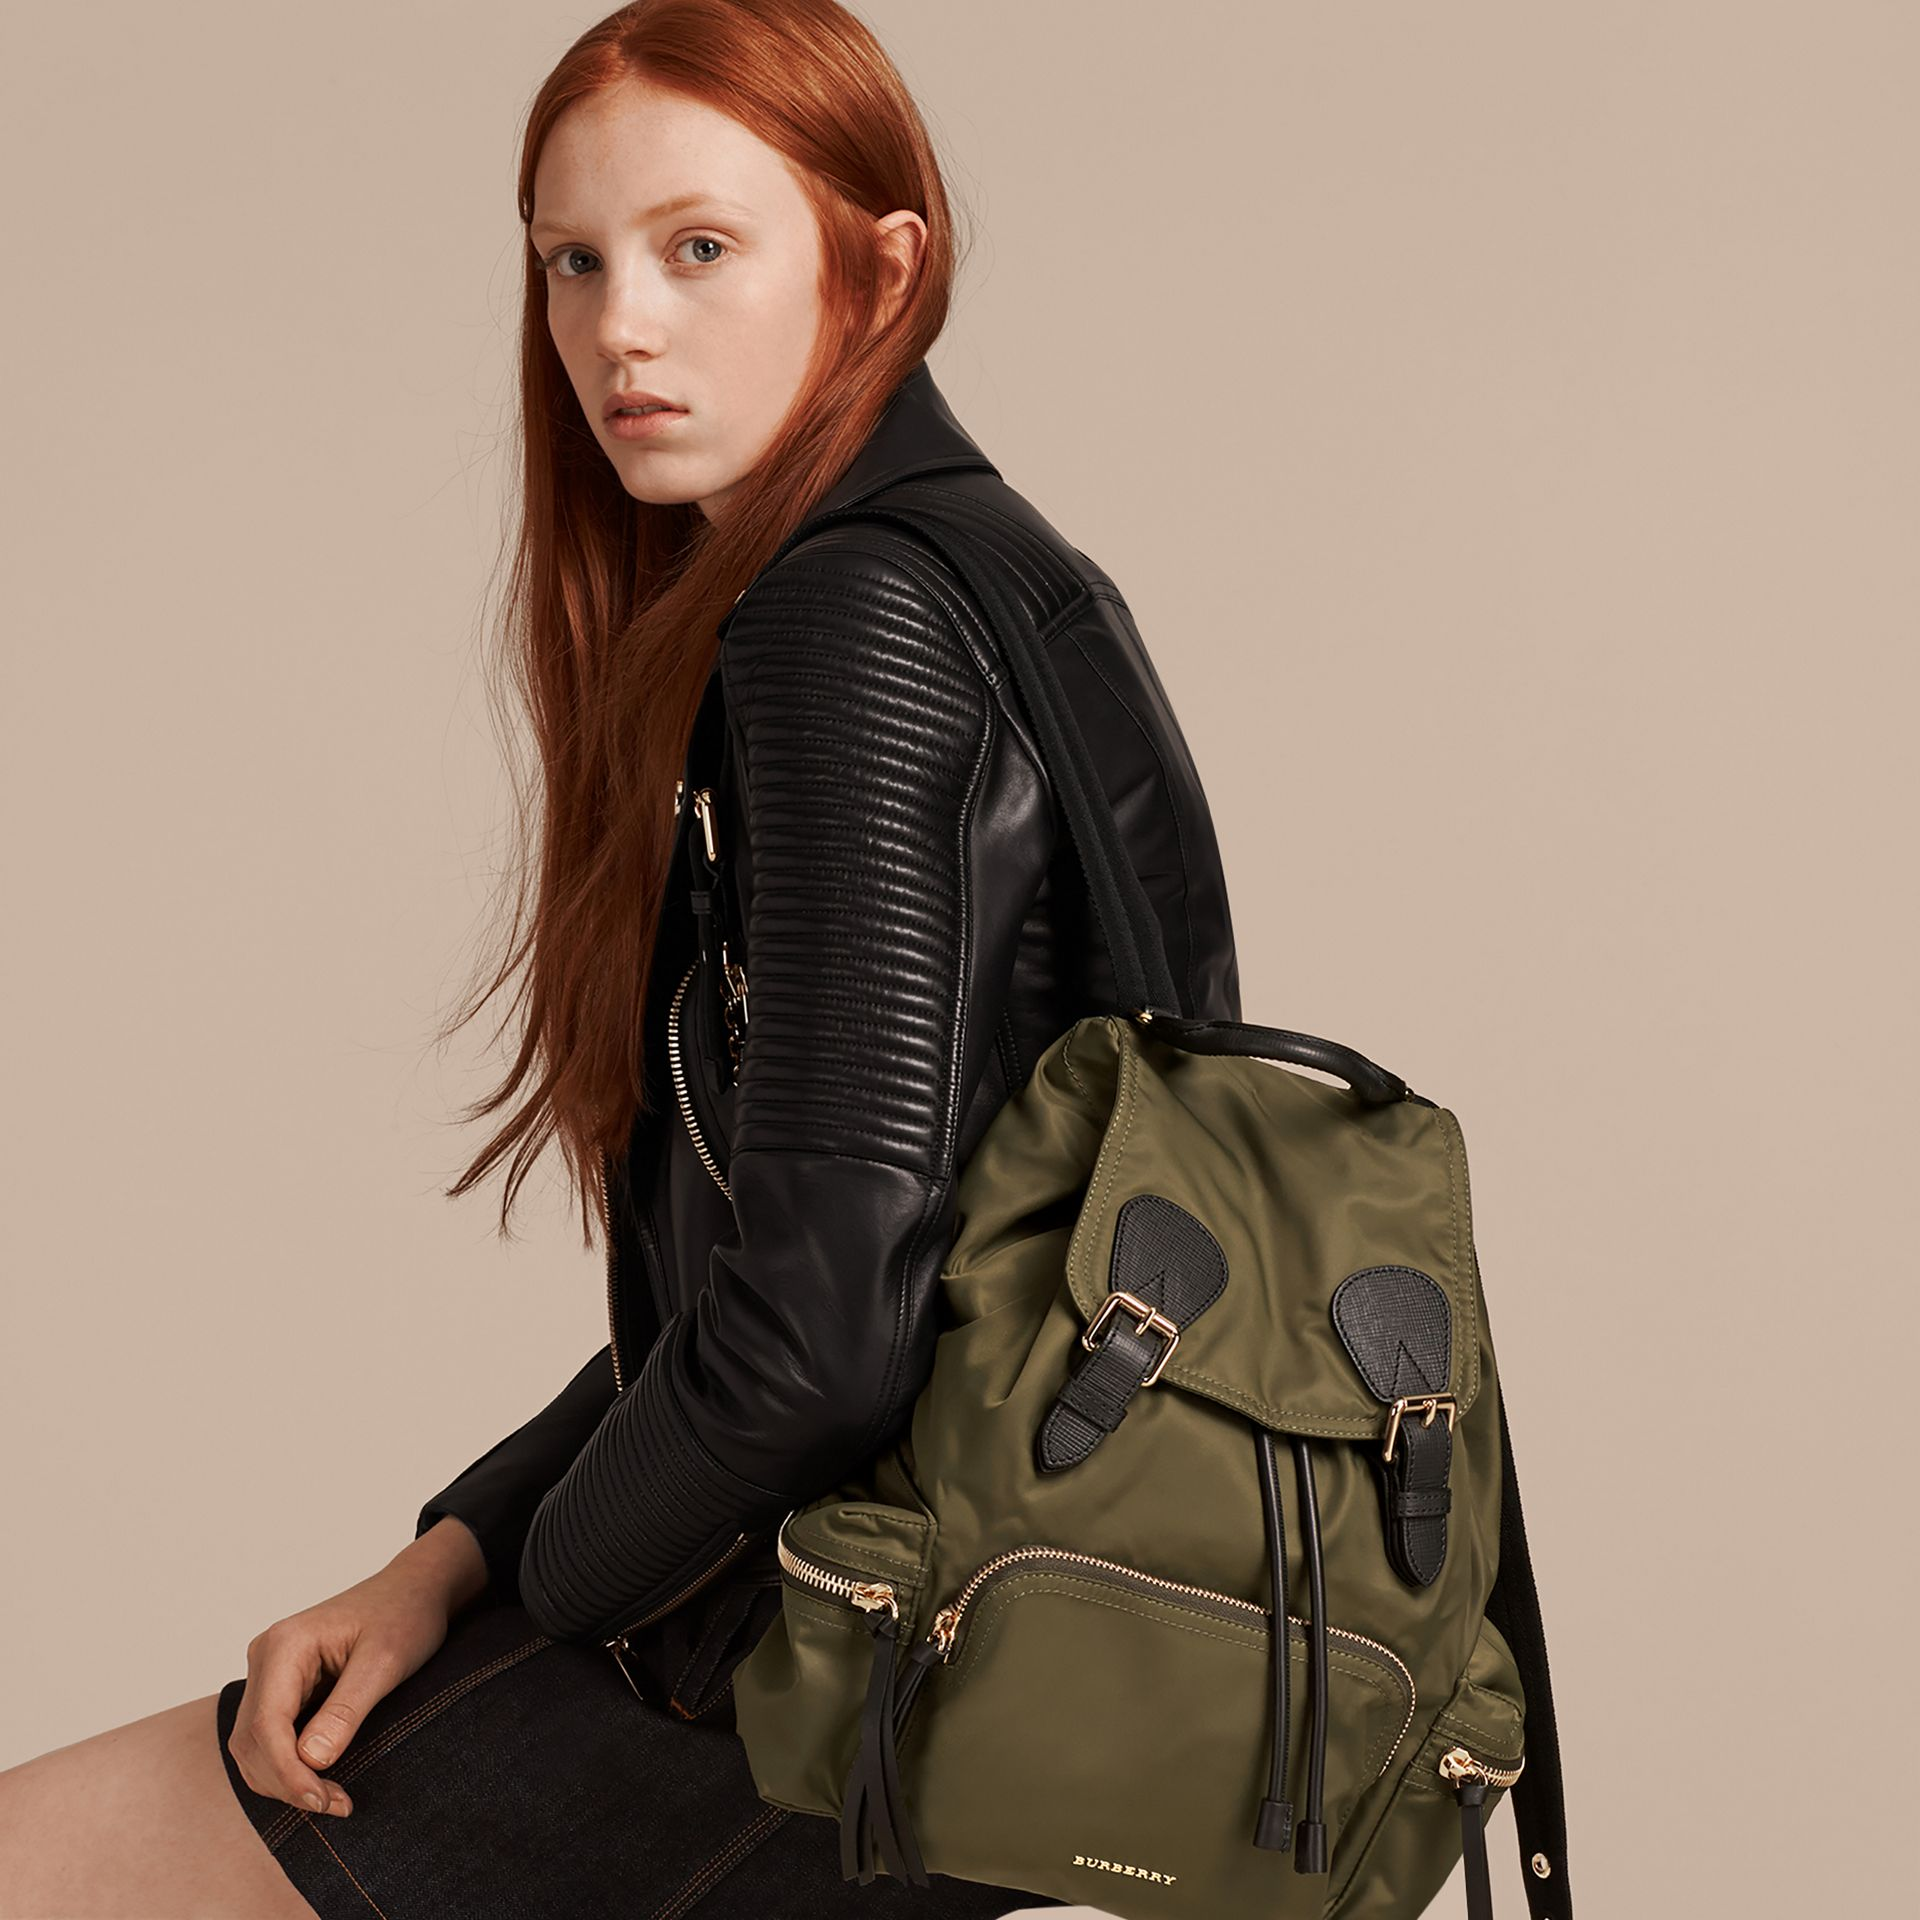 Zaino The Rucksack medio in nylon tecnico e pelle (Verde Tela) - Donna | Burberry - immagine della galleria 3